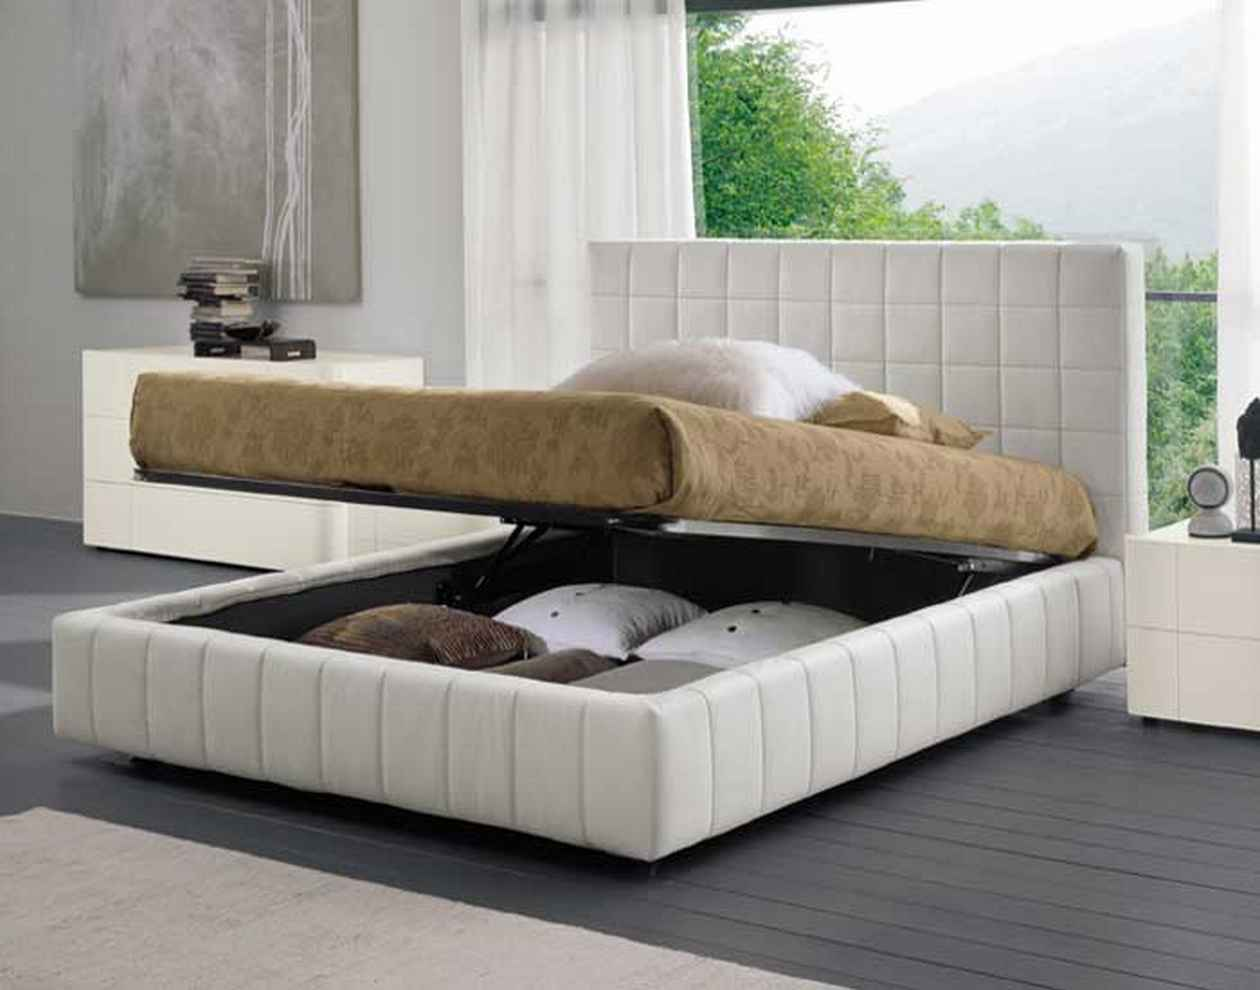 Strategies for stylish storages my decorative for New stuff to do in bed